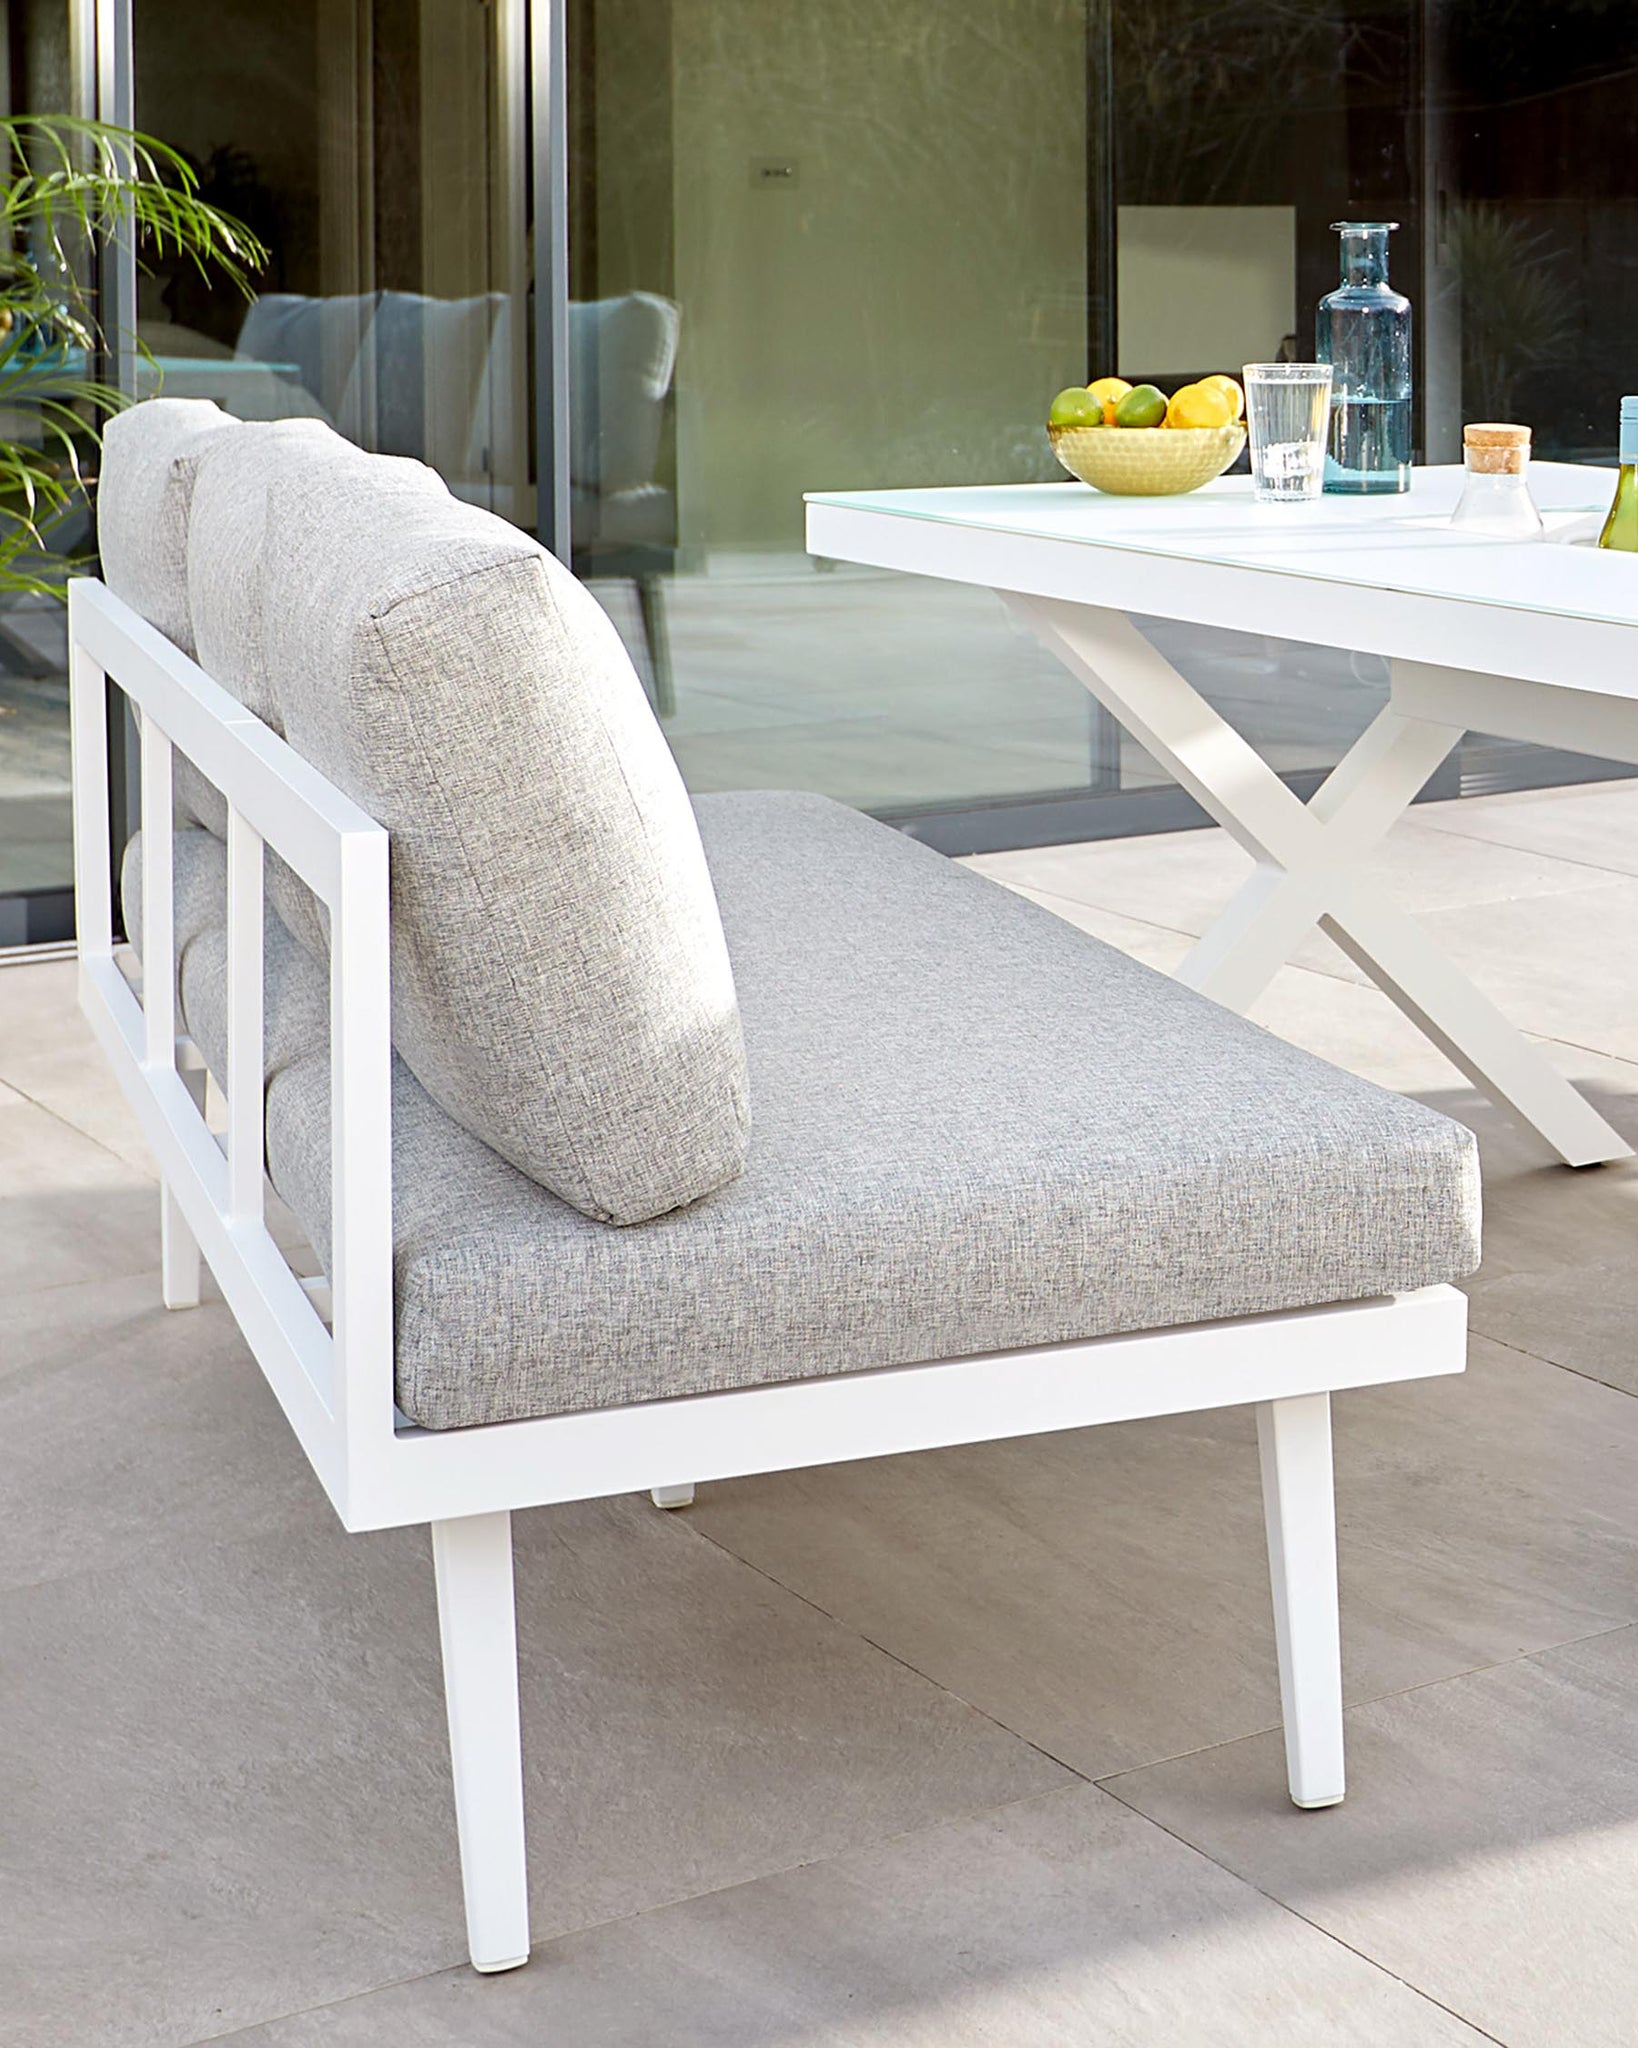 Palermo White 3 Seater Garden Bench with Backrest